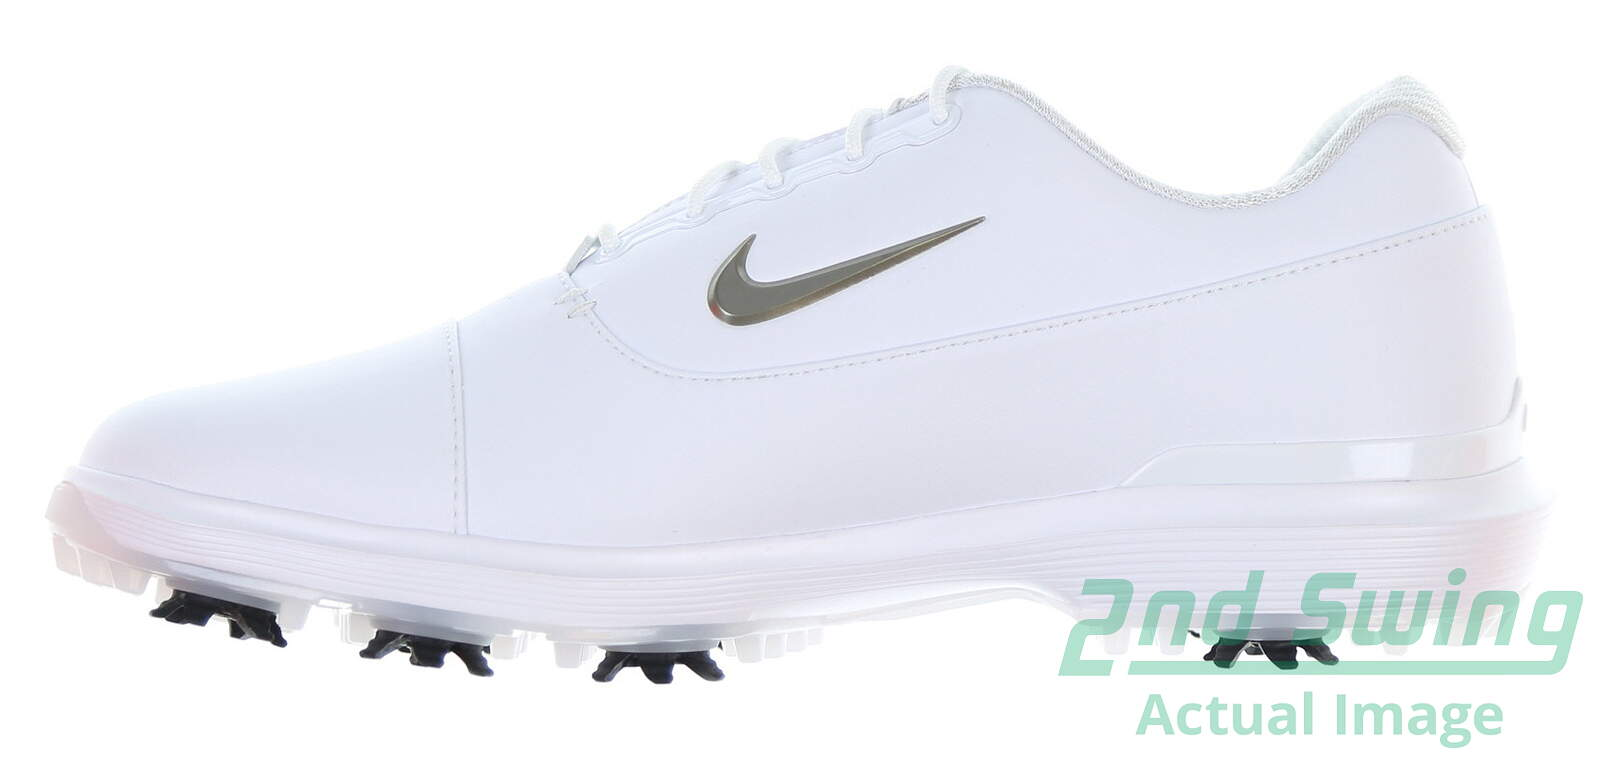 New Mens Golf Shoe Nike Air Zoom Victory Pro Size 11.5